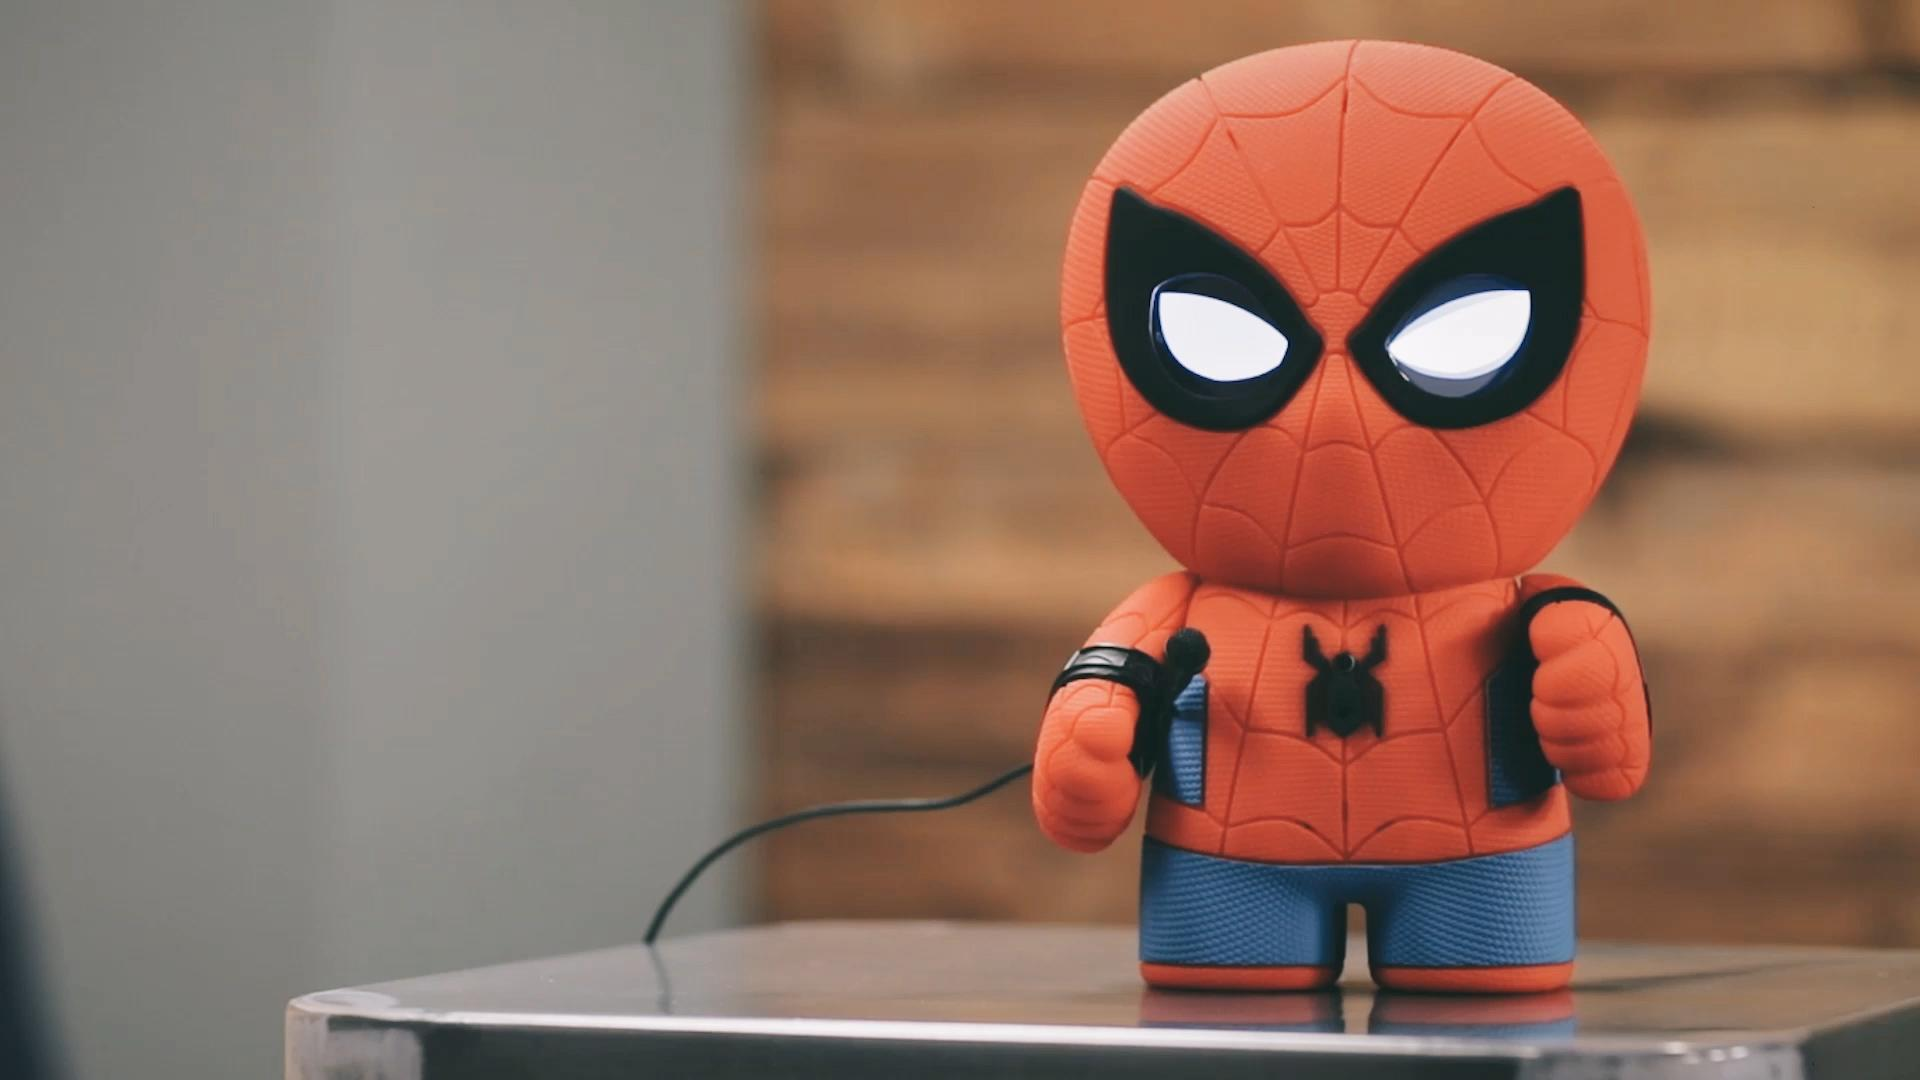 Sphero's new toy is a chatty Spider-Man